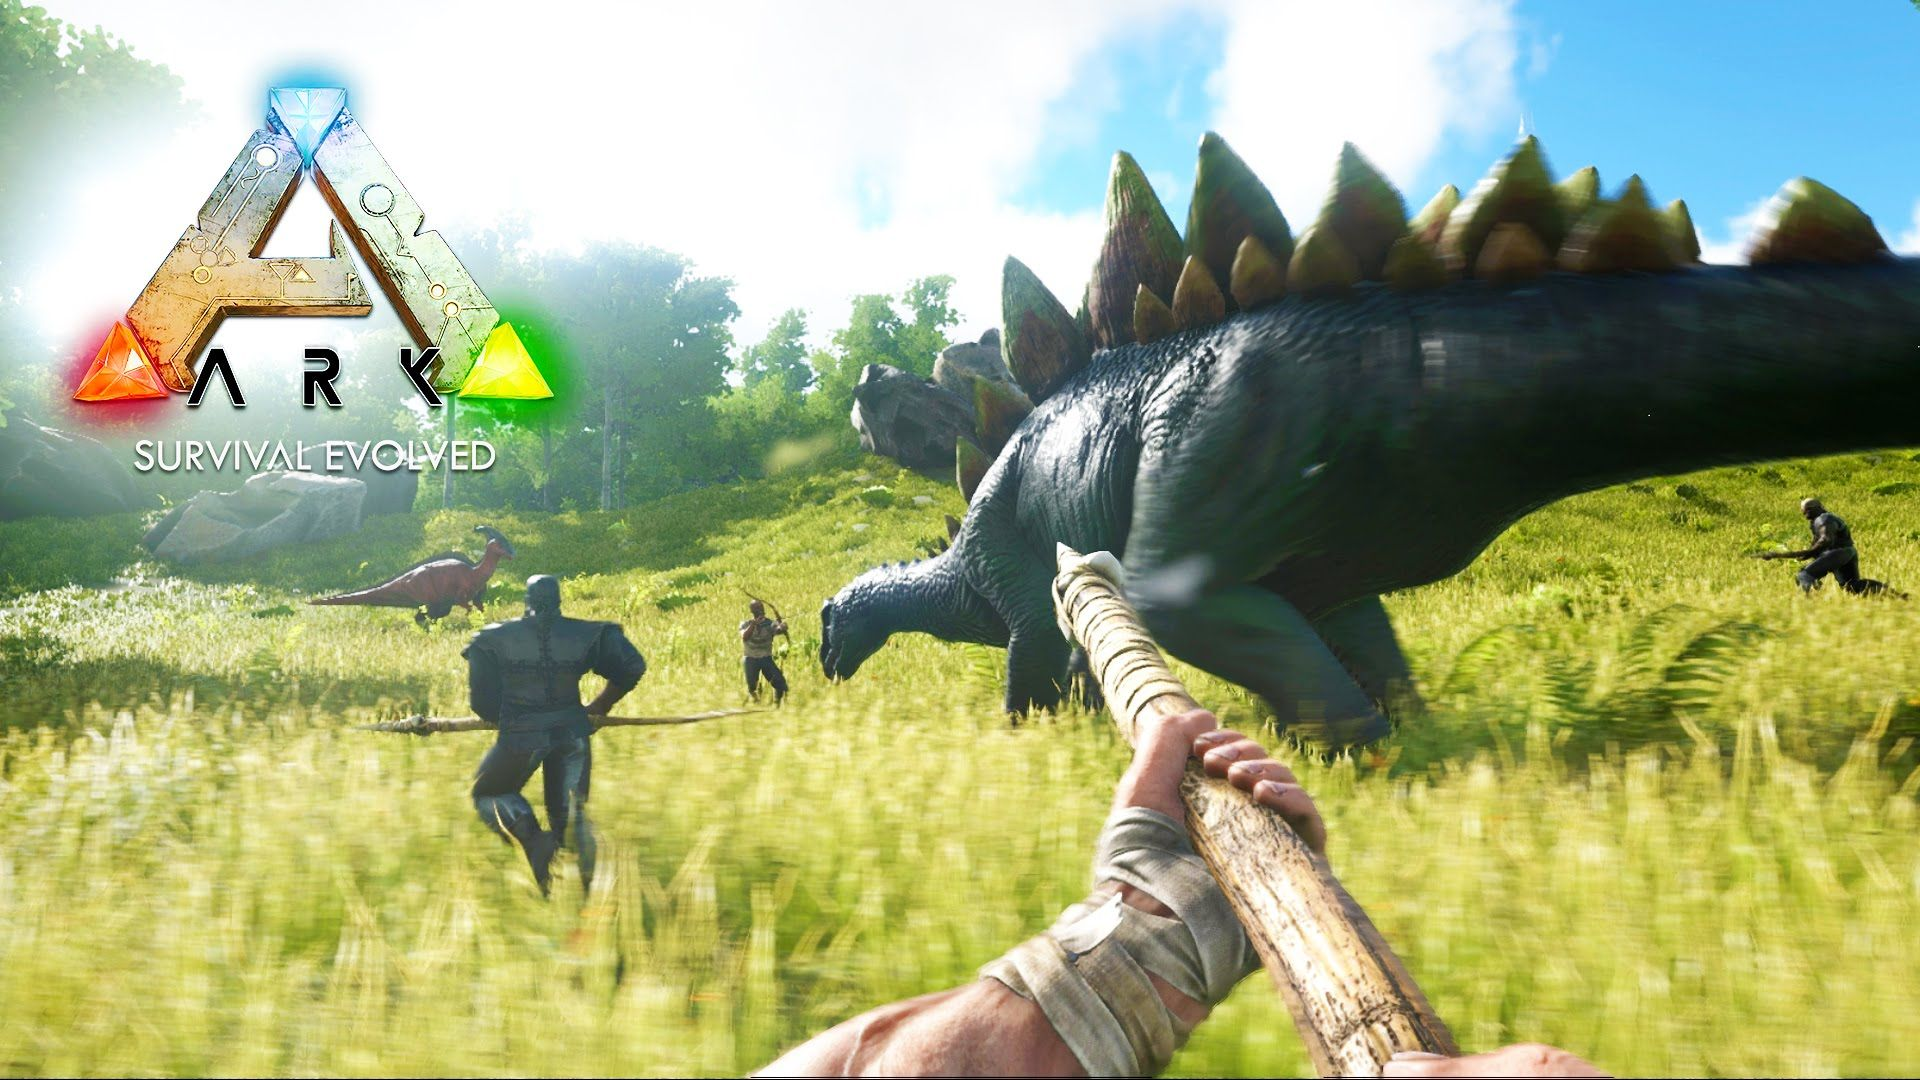 ARK: Survival Evolved - DINOSAUR FORTRESS CONSTRUCTION! (ARK: Survival Evolved Gameplay) | Game ark survival evolved, Ark survival evolved, Survival